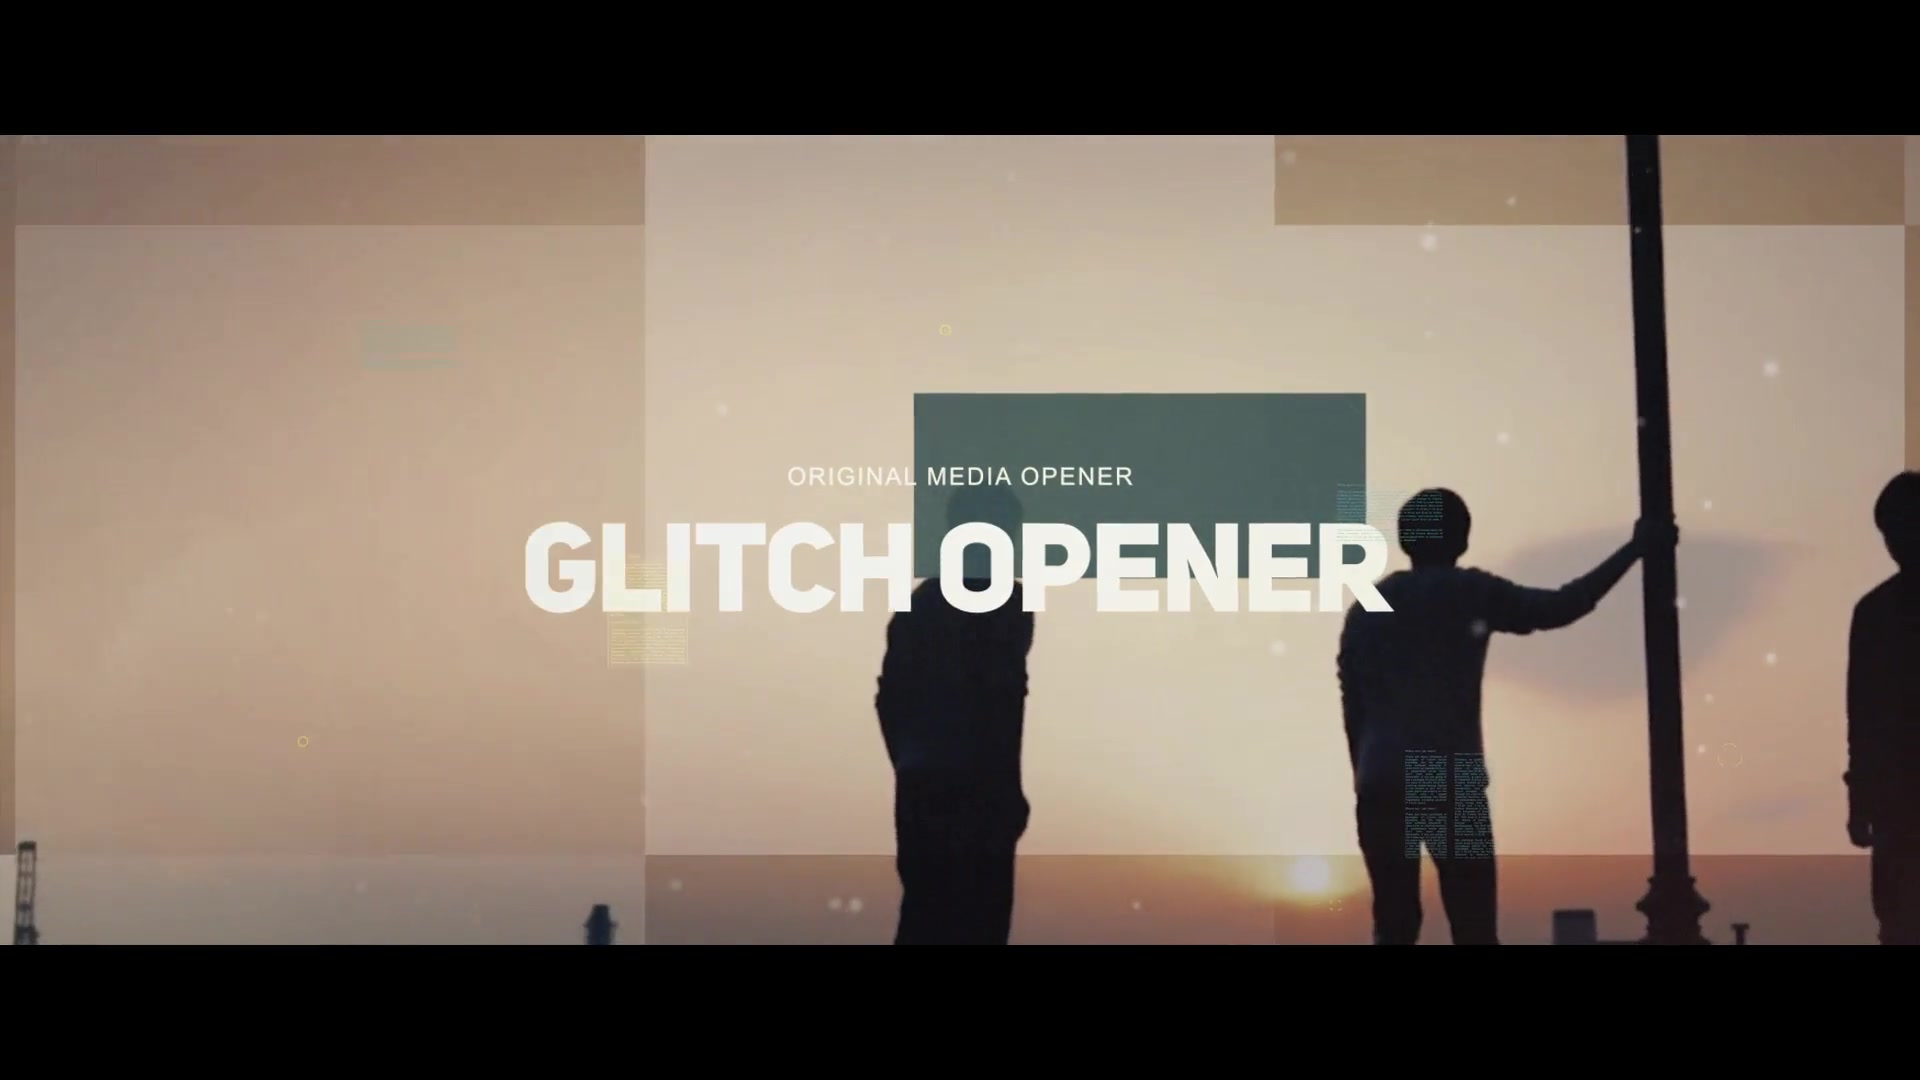 Glitch Media Opener - Download Videohive 20519767